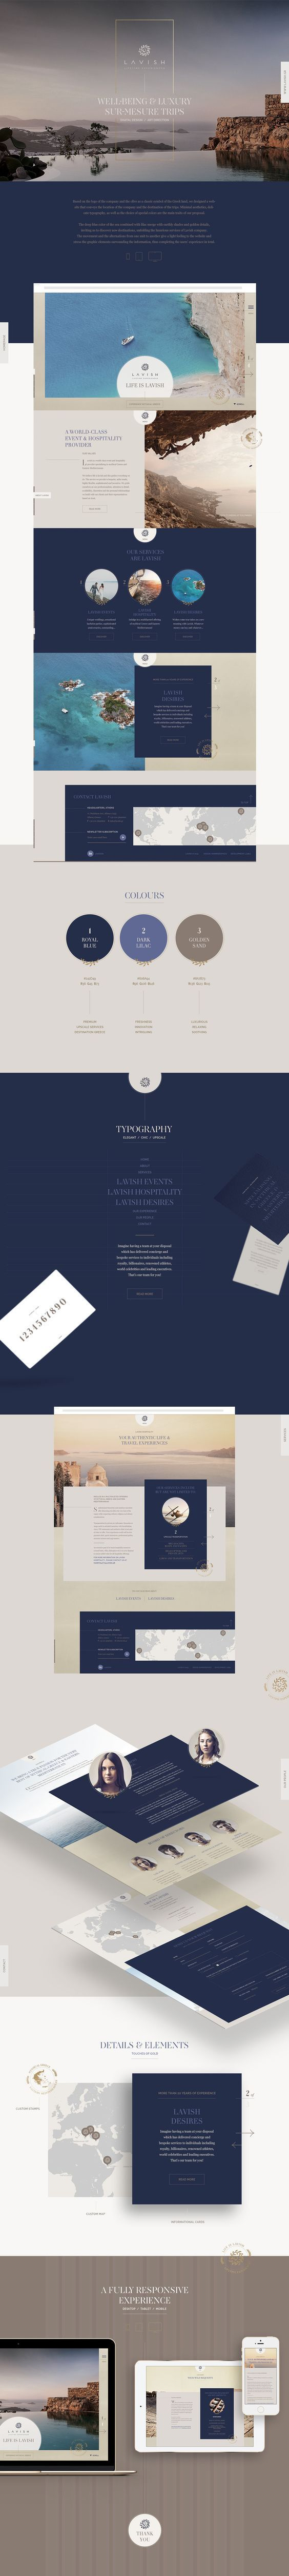 Lavish Web Design